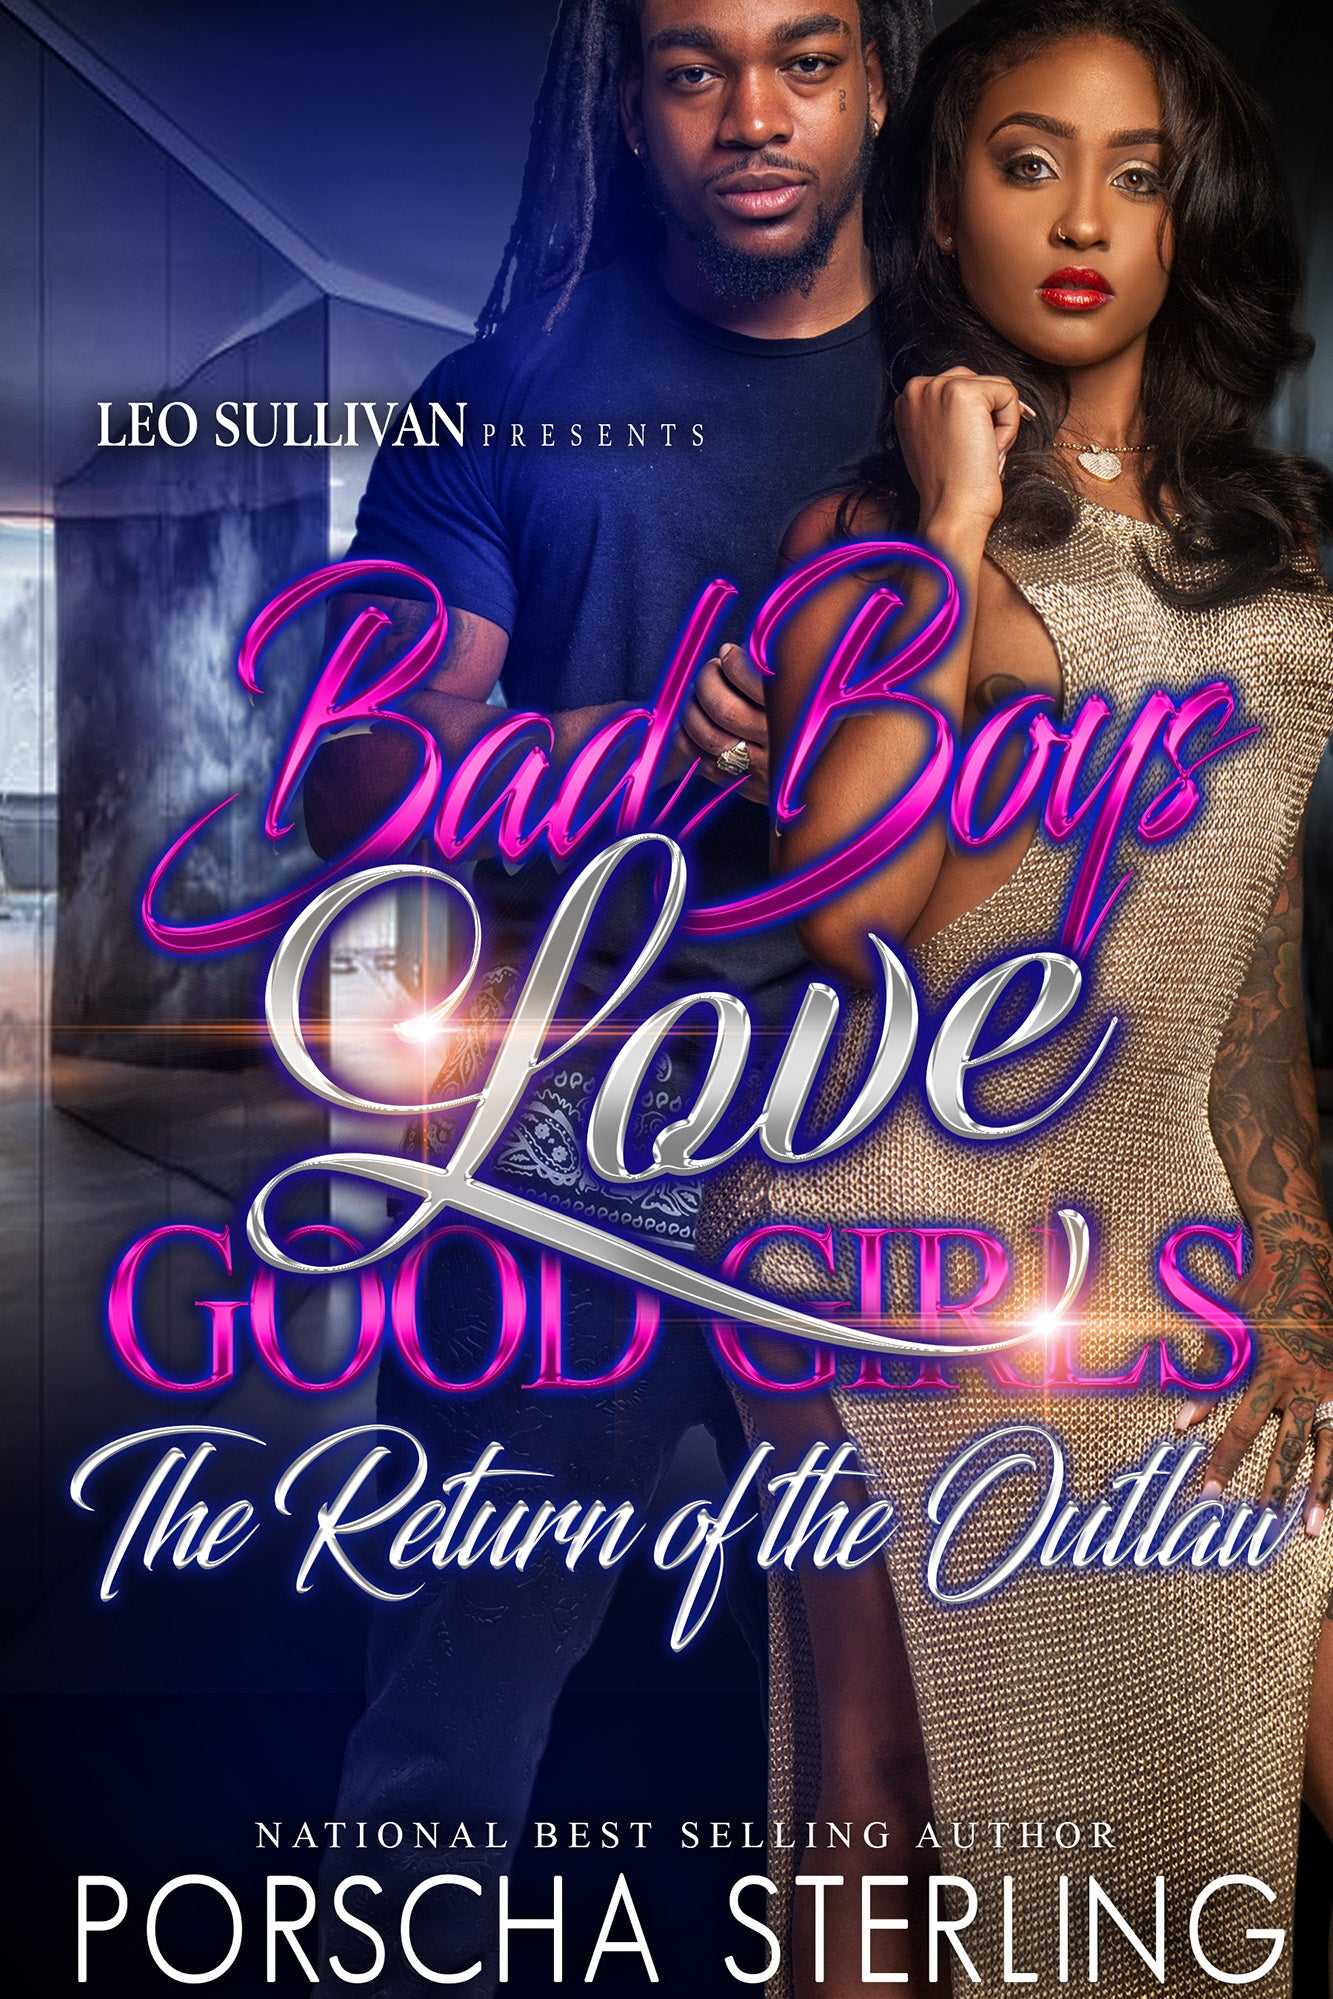 Bad Boys Love Good Girls: The Return Of The Outlaw (eBook)